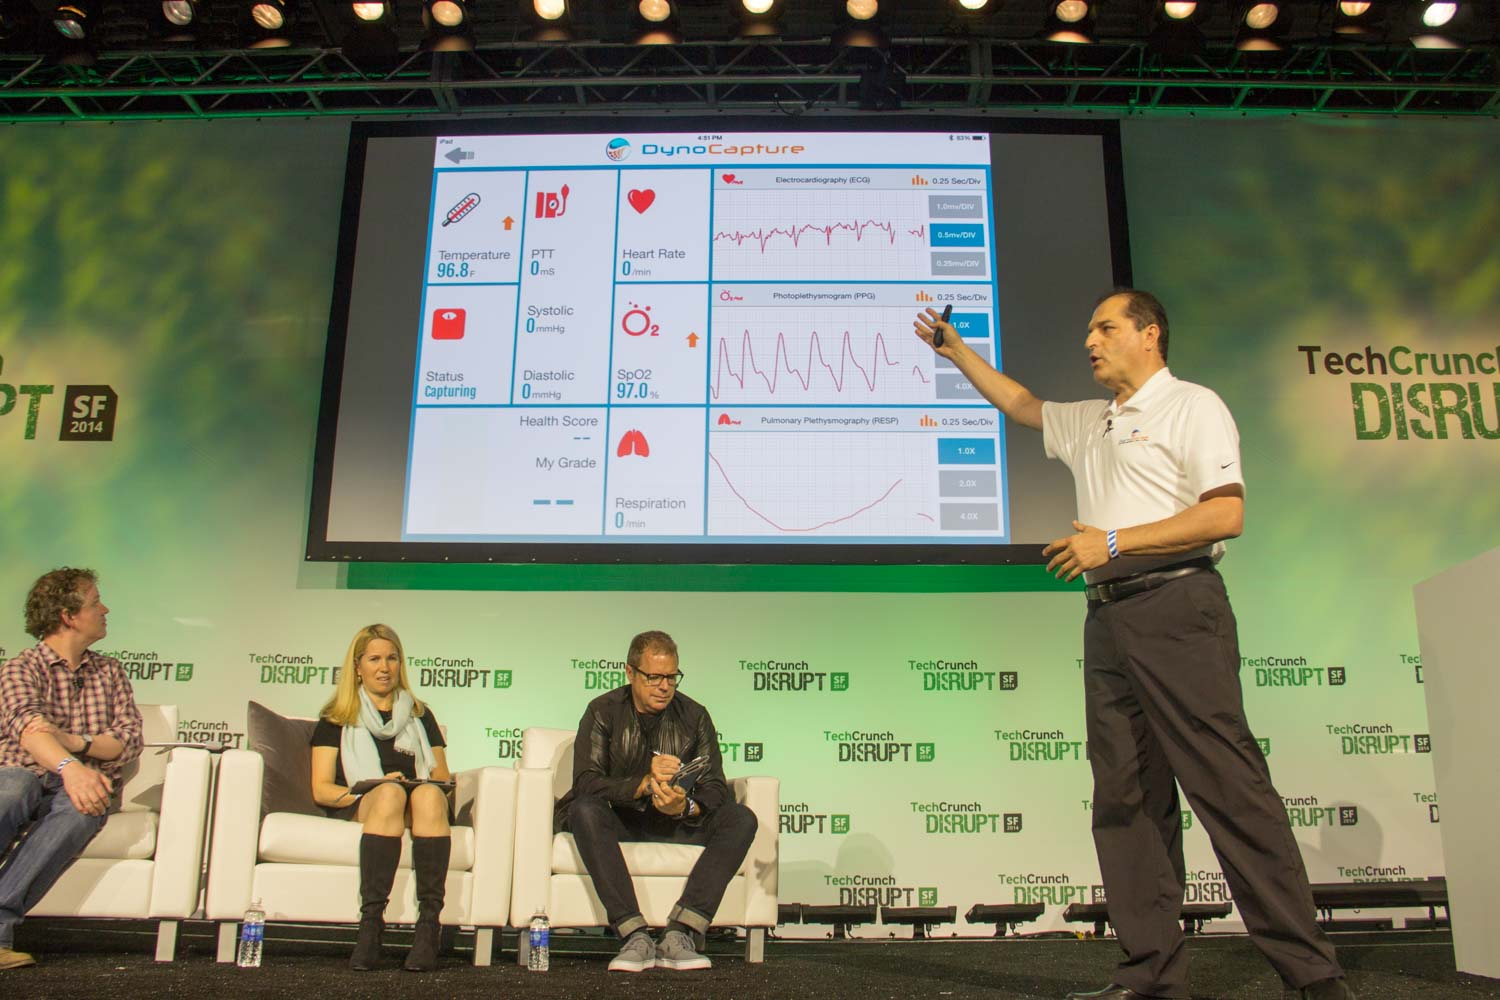 https://techcrunch com/2014/09/09/hands-on-with-the-iphone-6-and